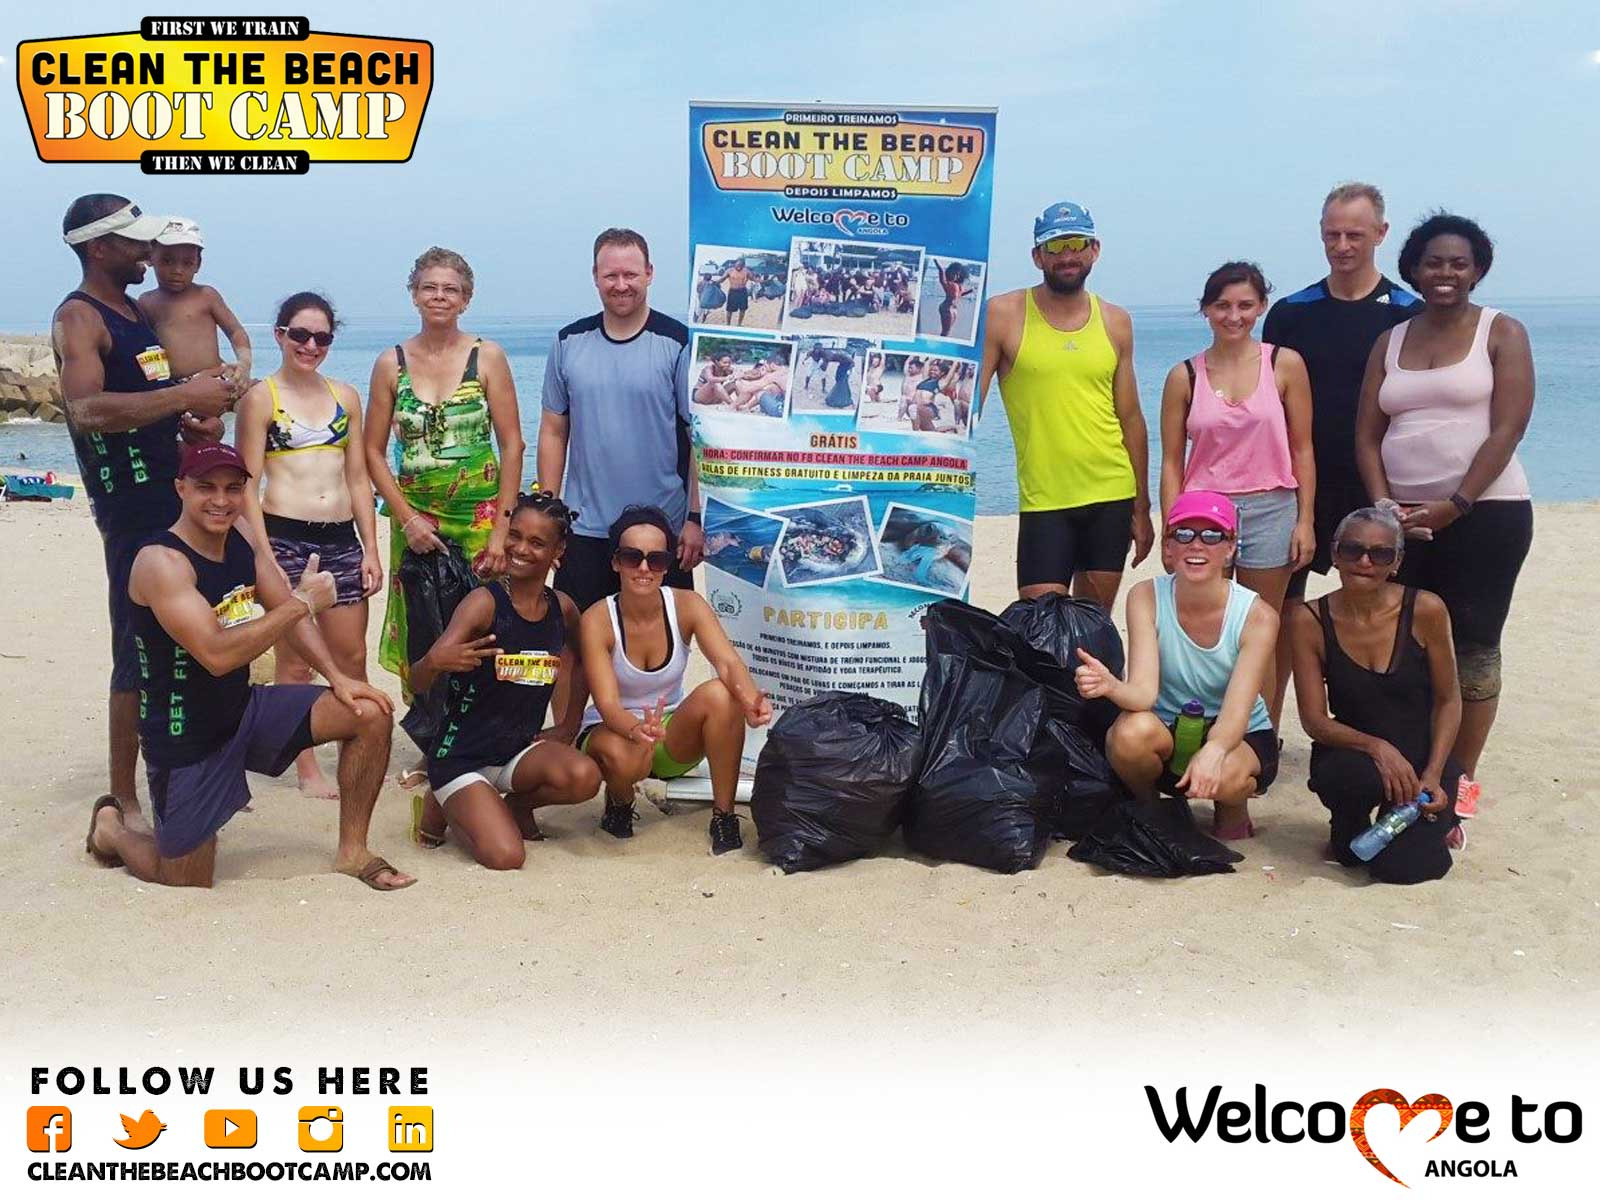 Angola Boot Camp & Angola Beach Clean Up